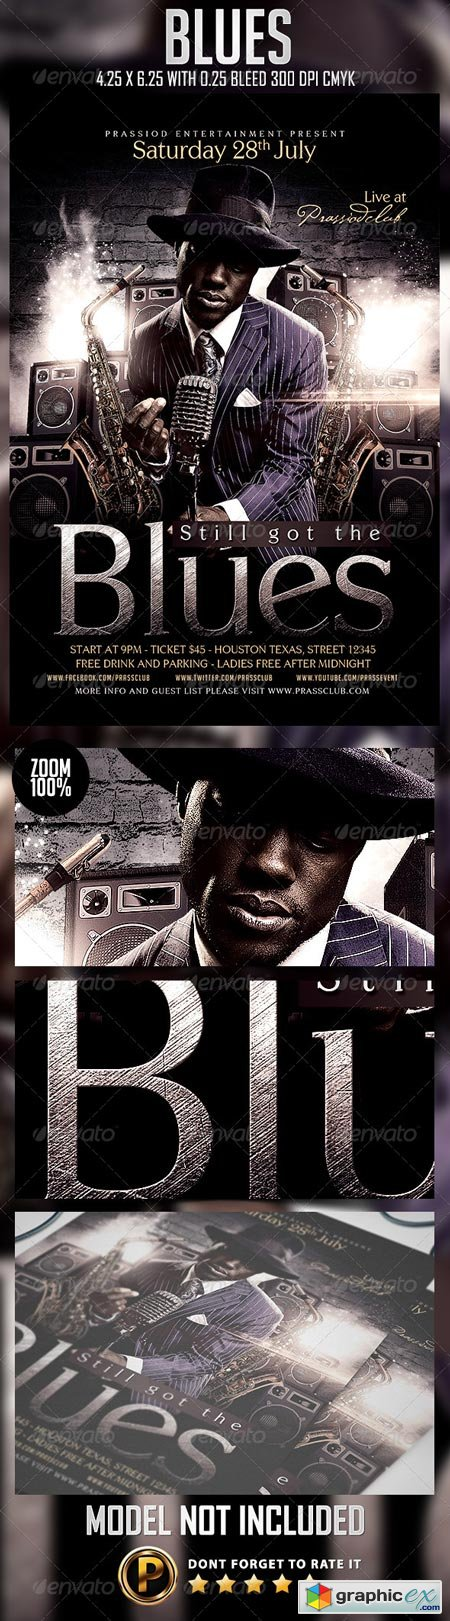 Blues Flyer Template 8325084